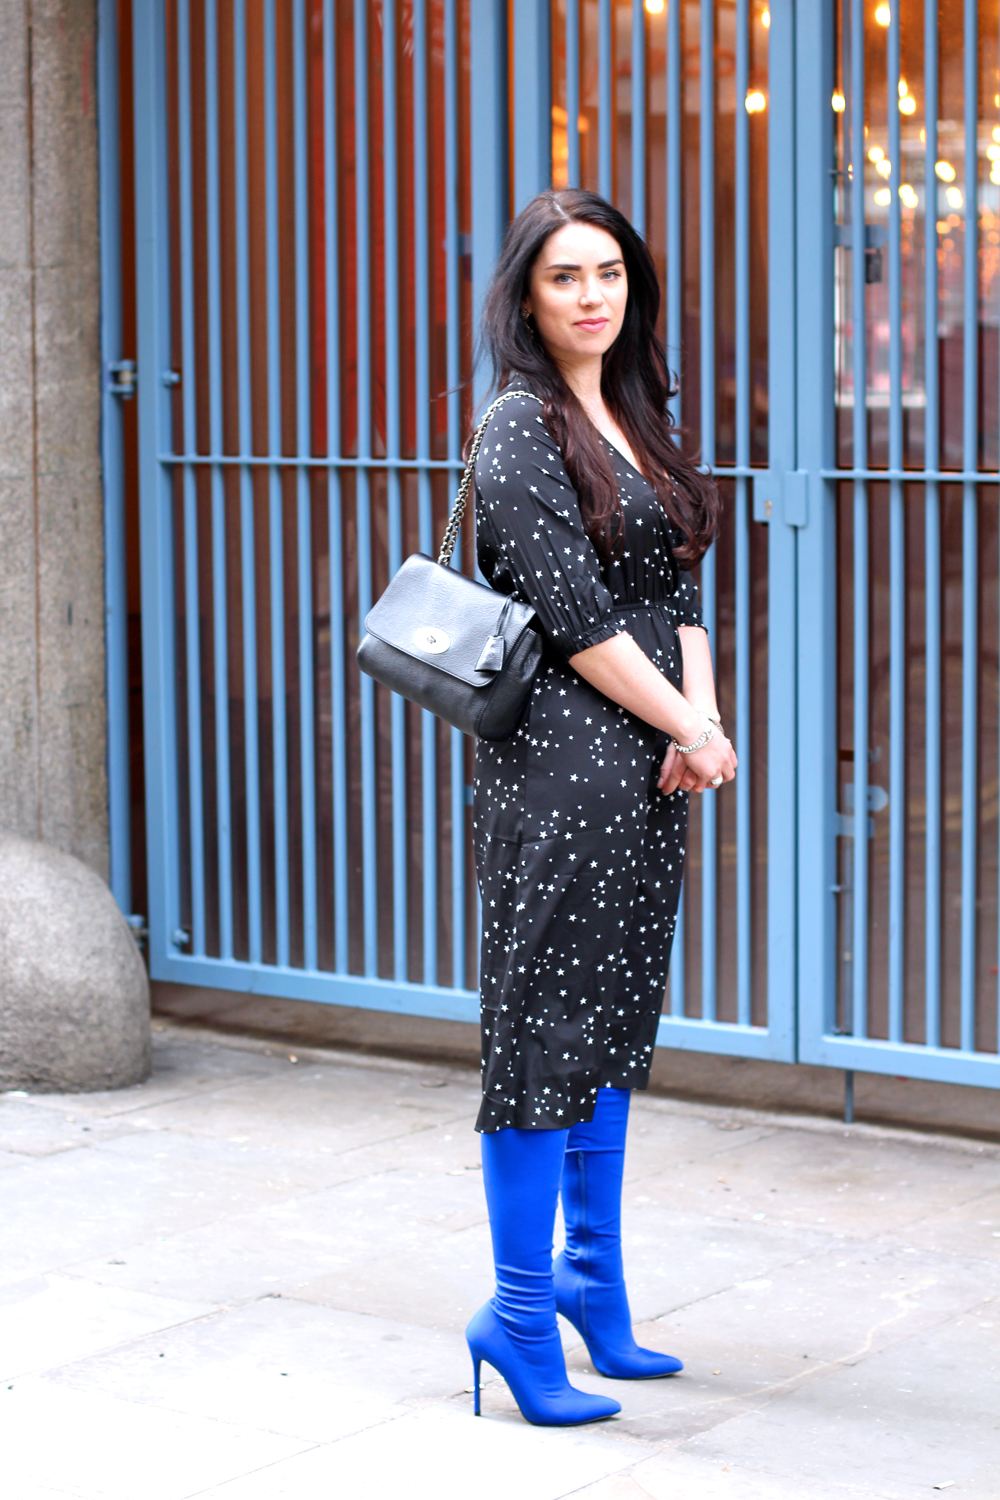 Emma Louise Layla in Boohoo star dress and blue thigh high boots - London style blogger